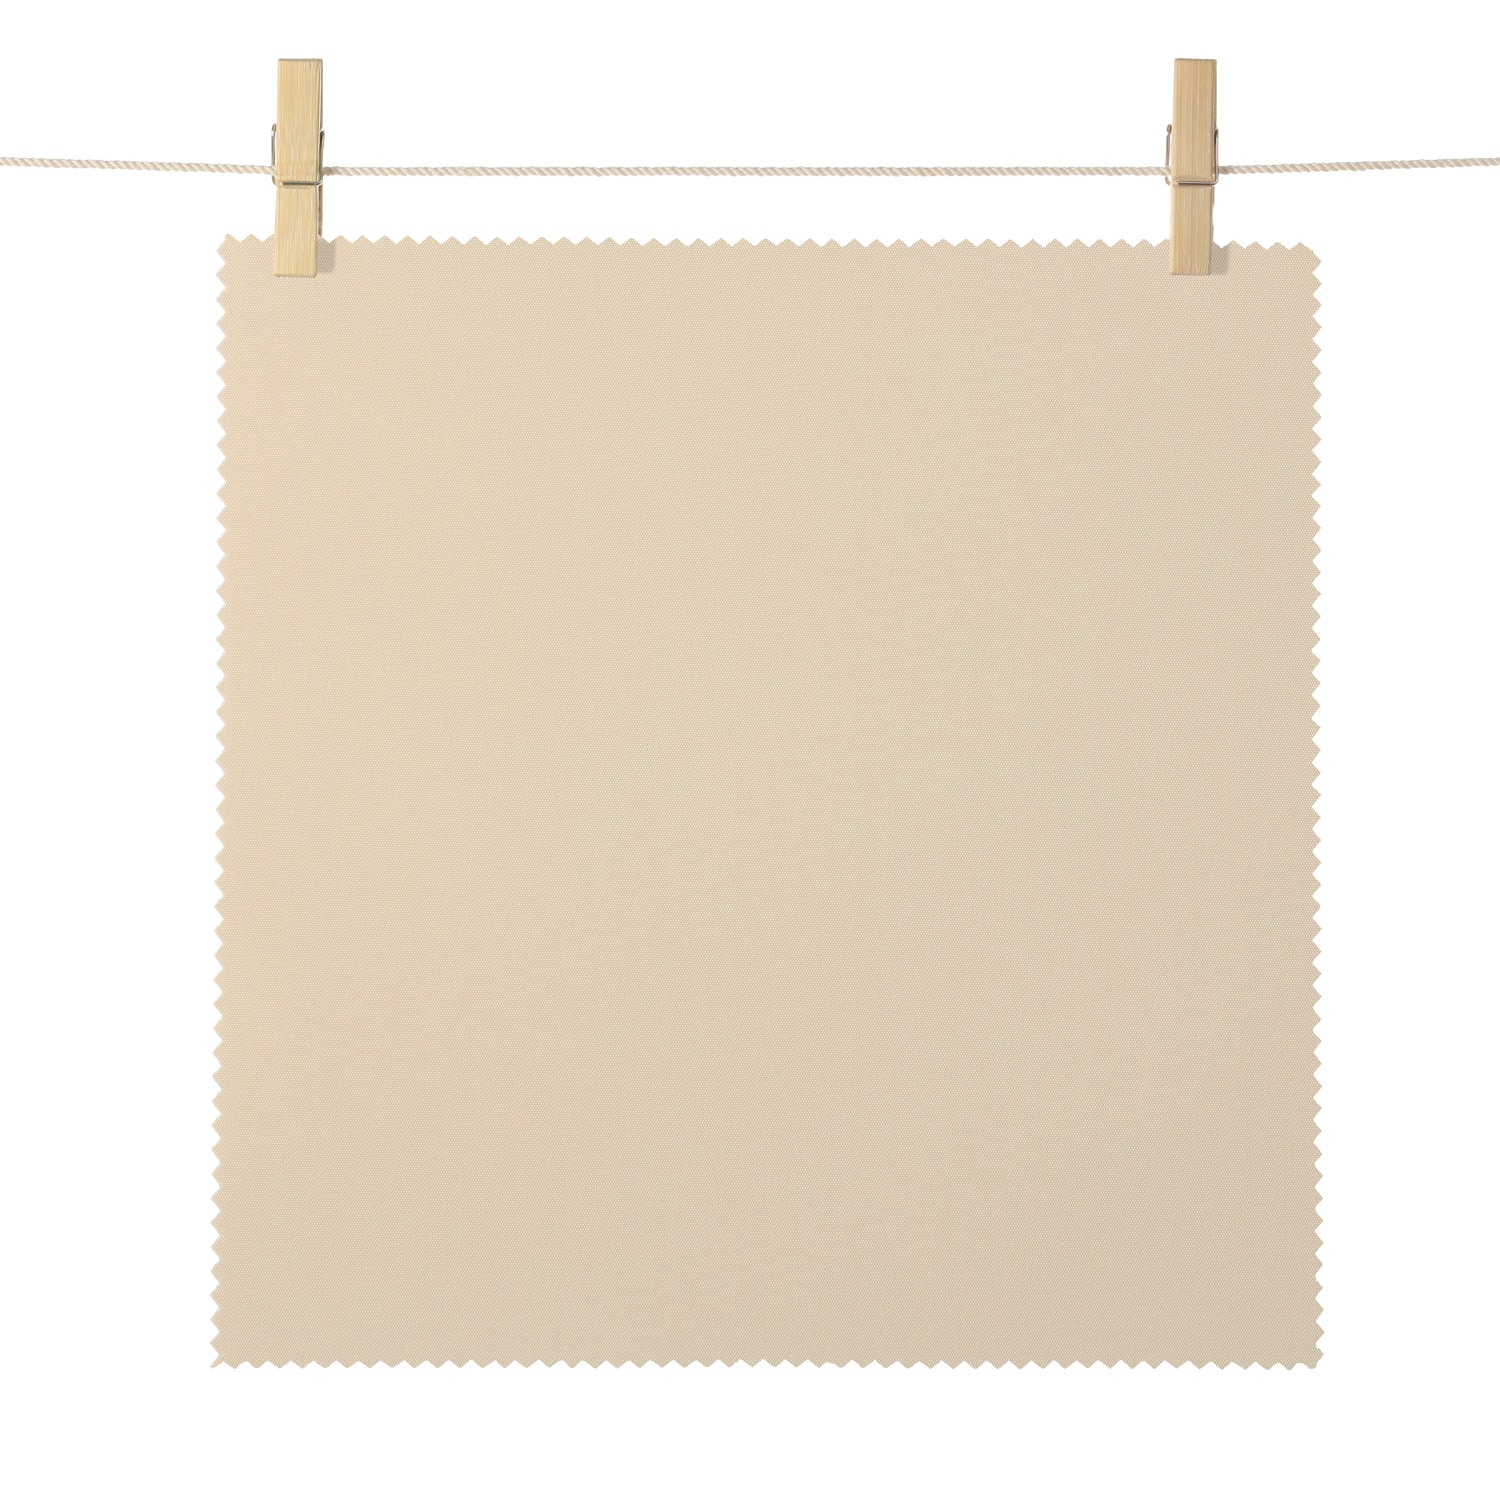 Eureka Tan Broadcloth Textured Blackout Roller Shade Swatch